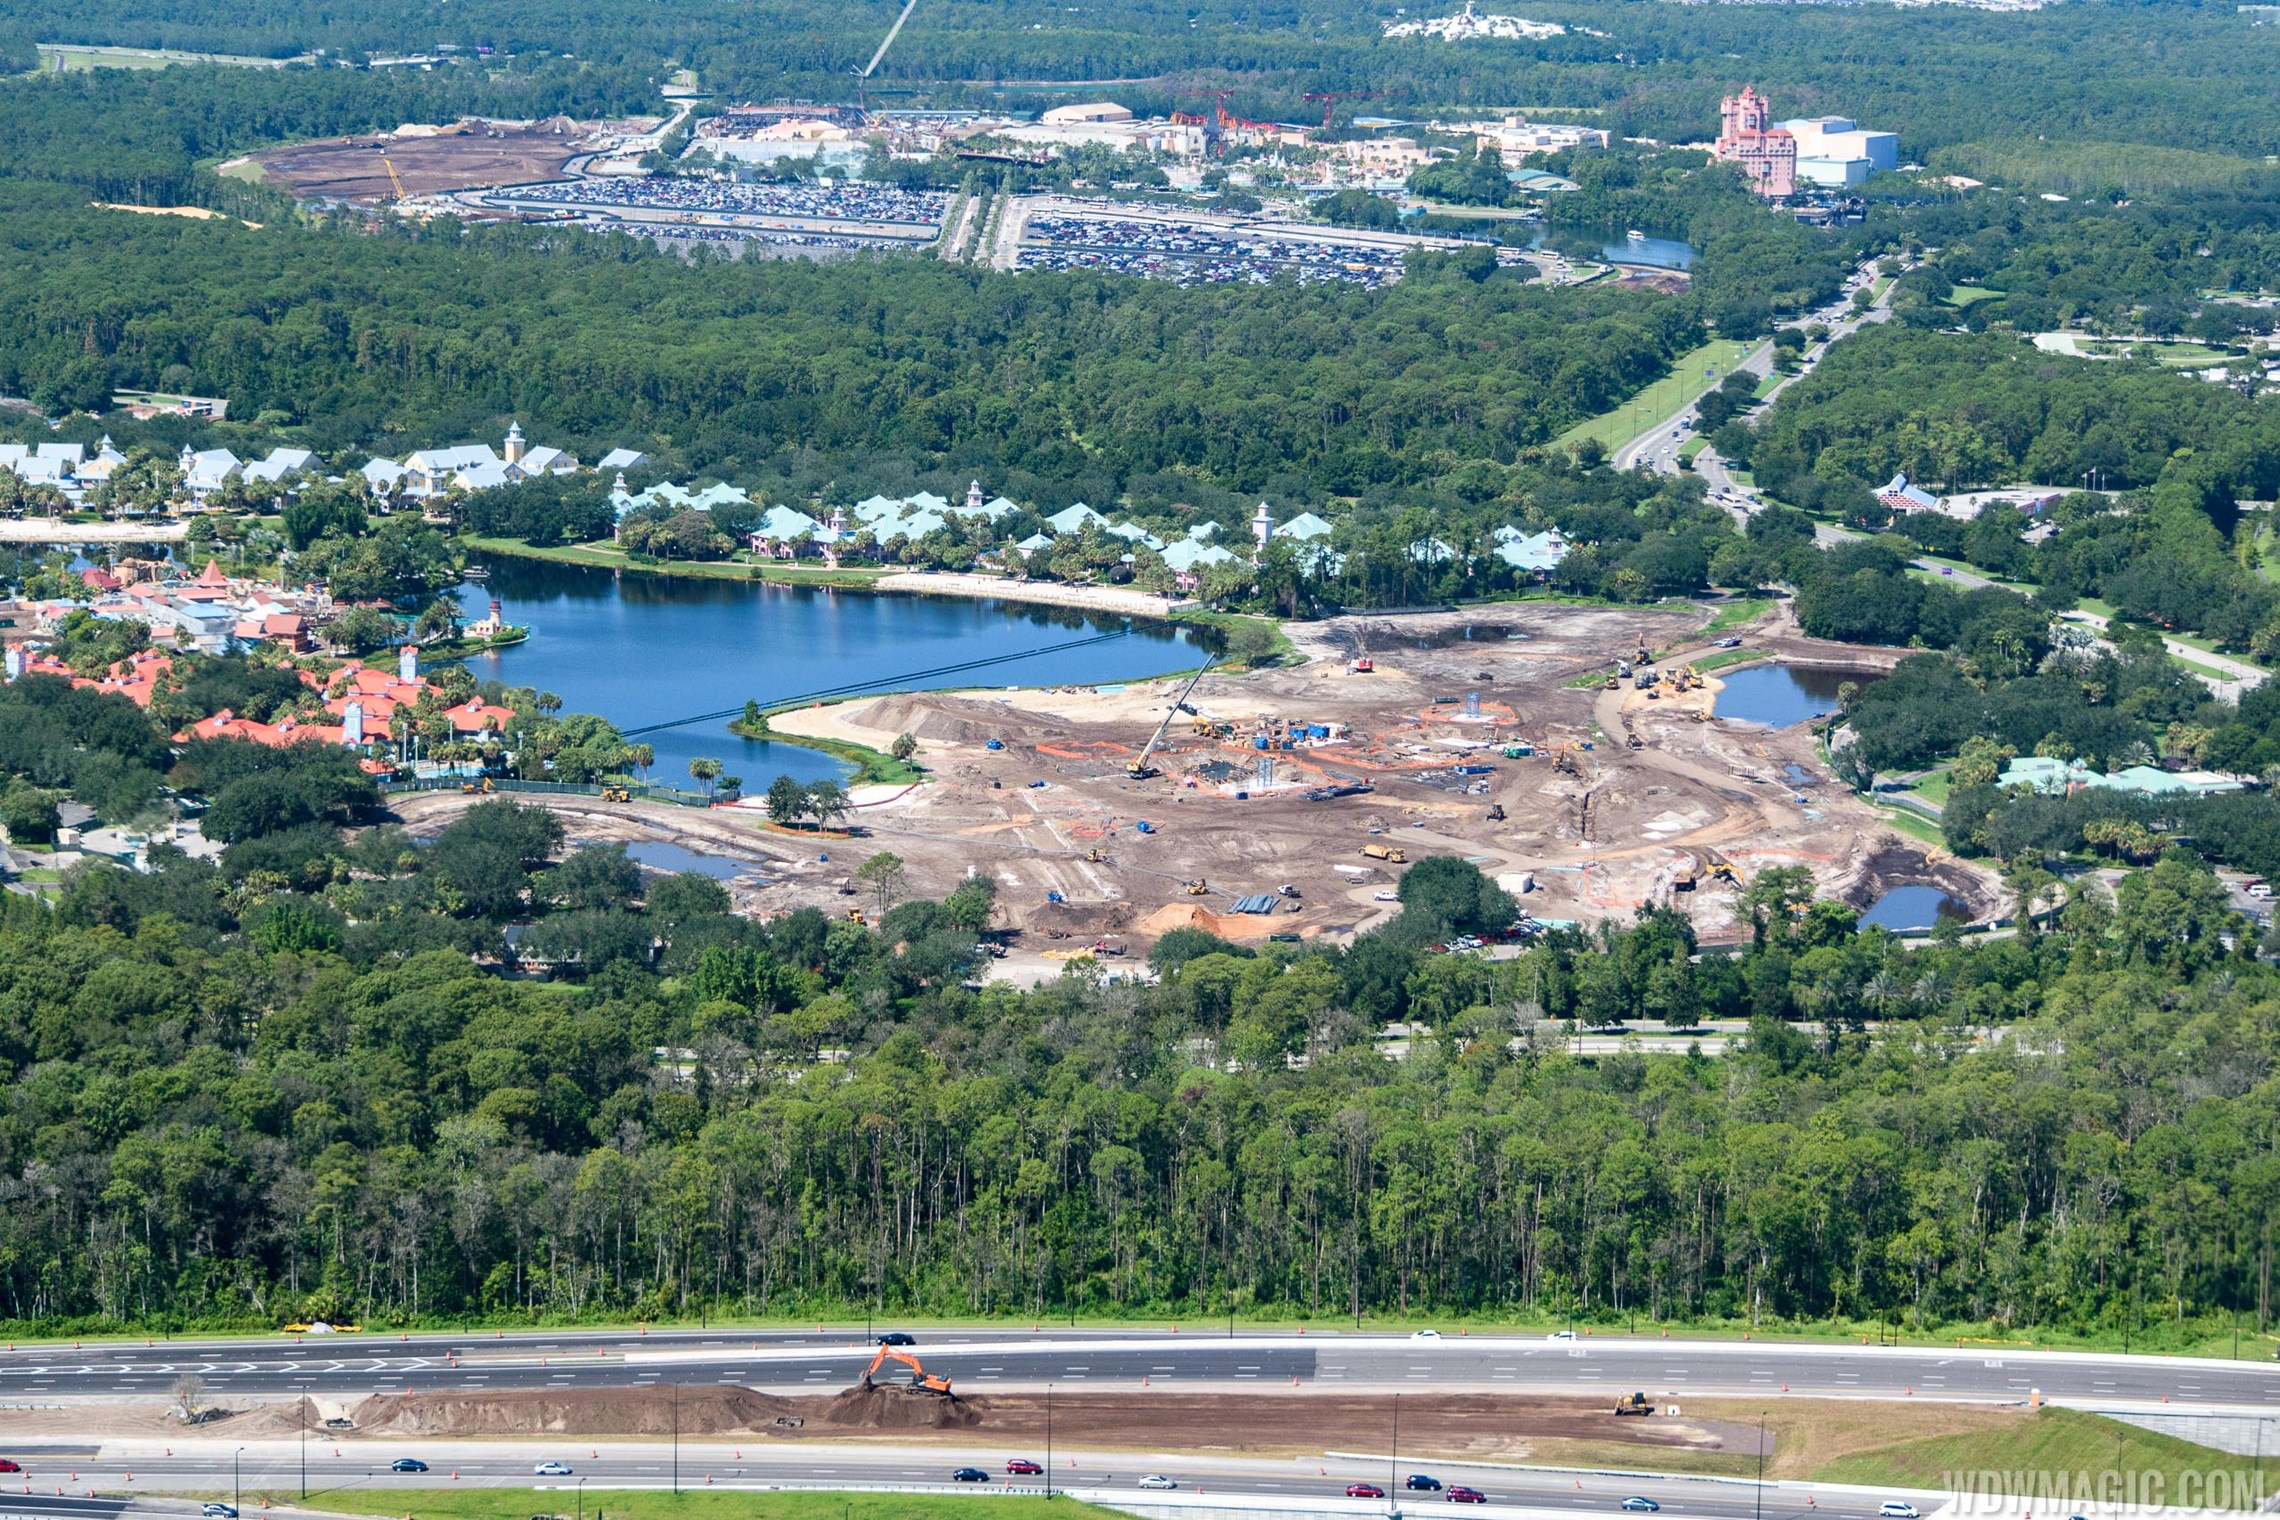 PHOTOS Construction gets underway at Disney Riviera Resort : Disney Riviera ResortFull30912 from www.wdwmagic.com size 2280 x 1520 jpeg 527kB